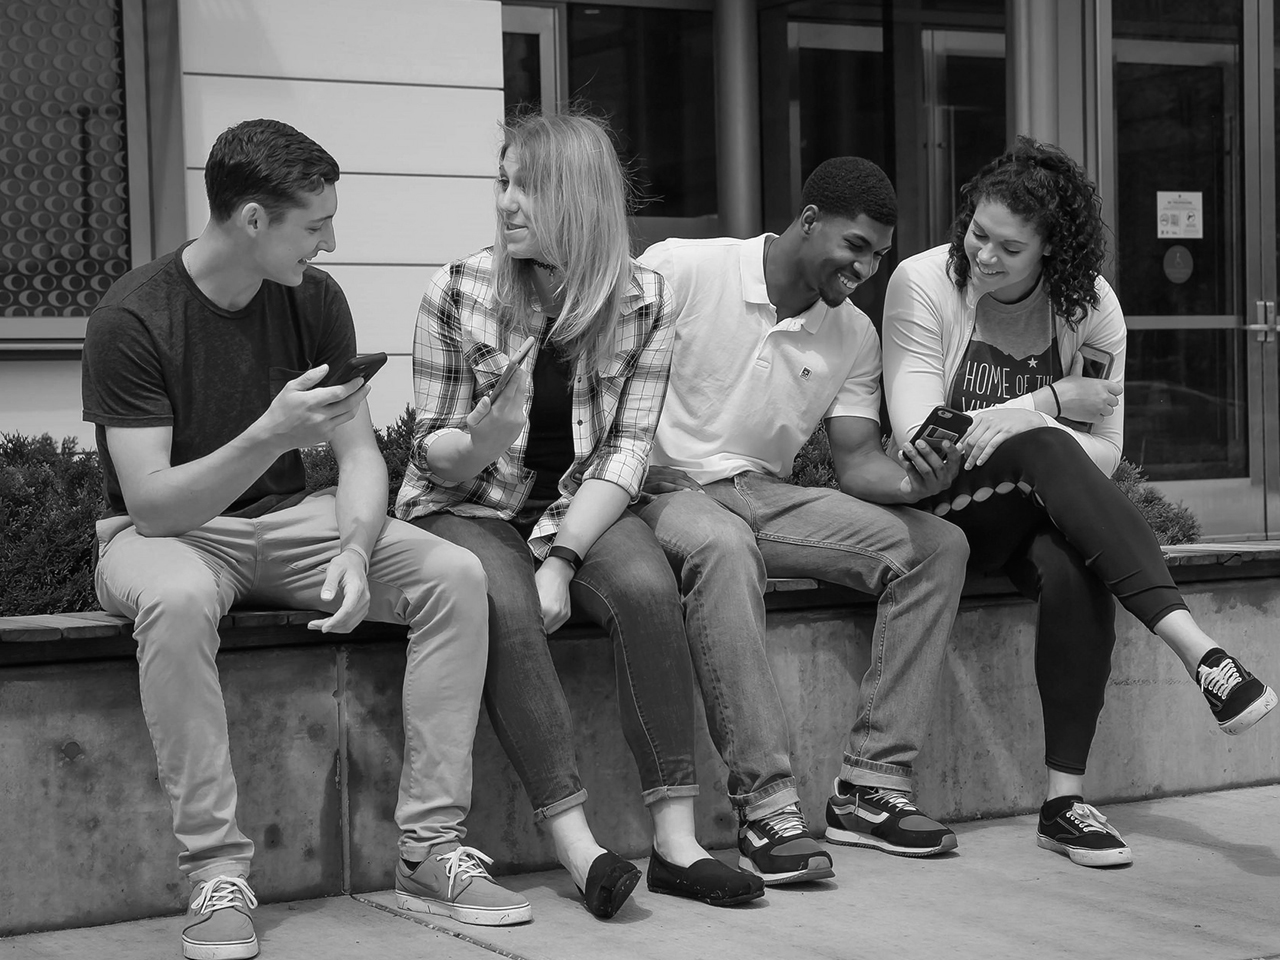 Photo of group of CSU students sitting in the plaza